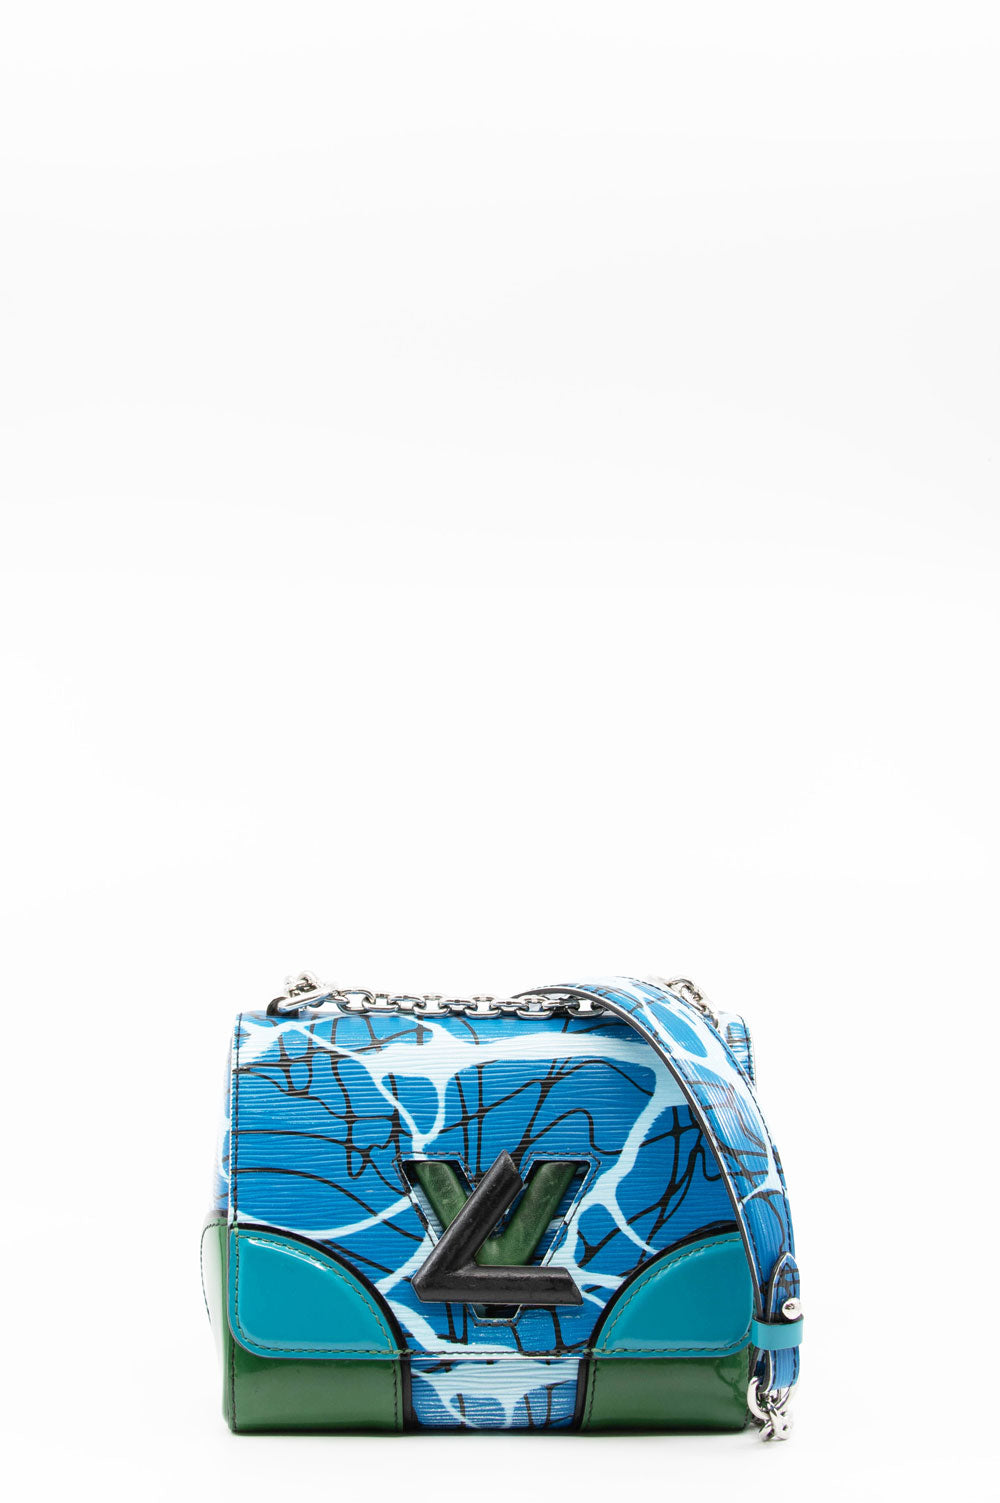 LOUIS VUITTON Twist PM Aqua Print